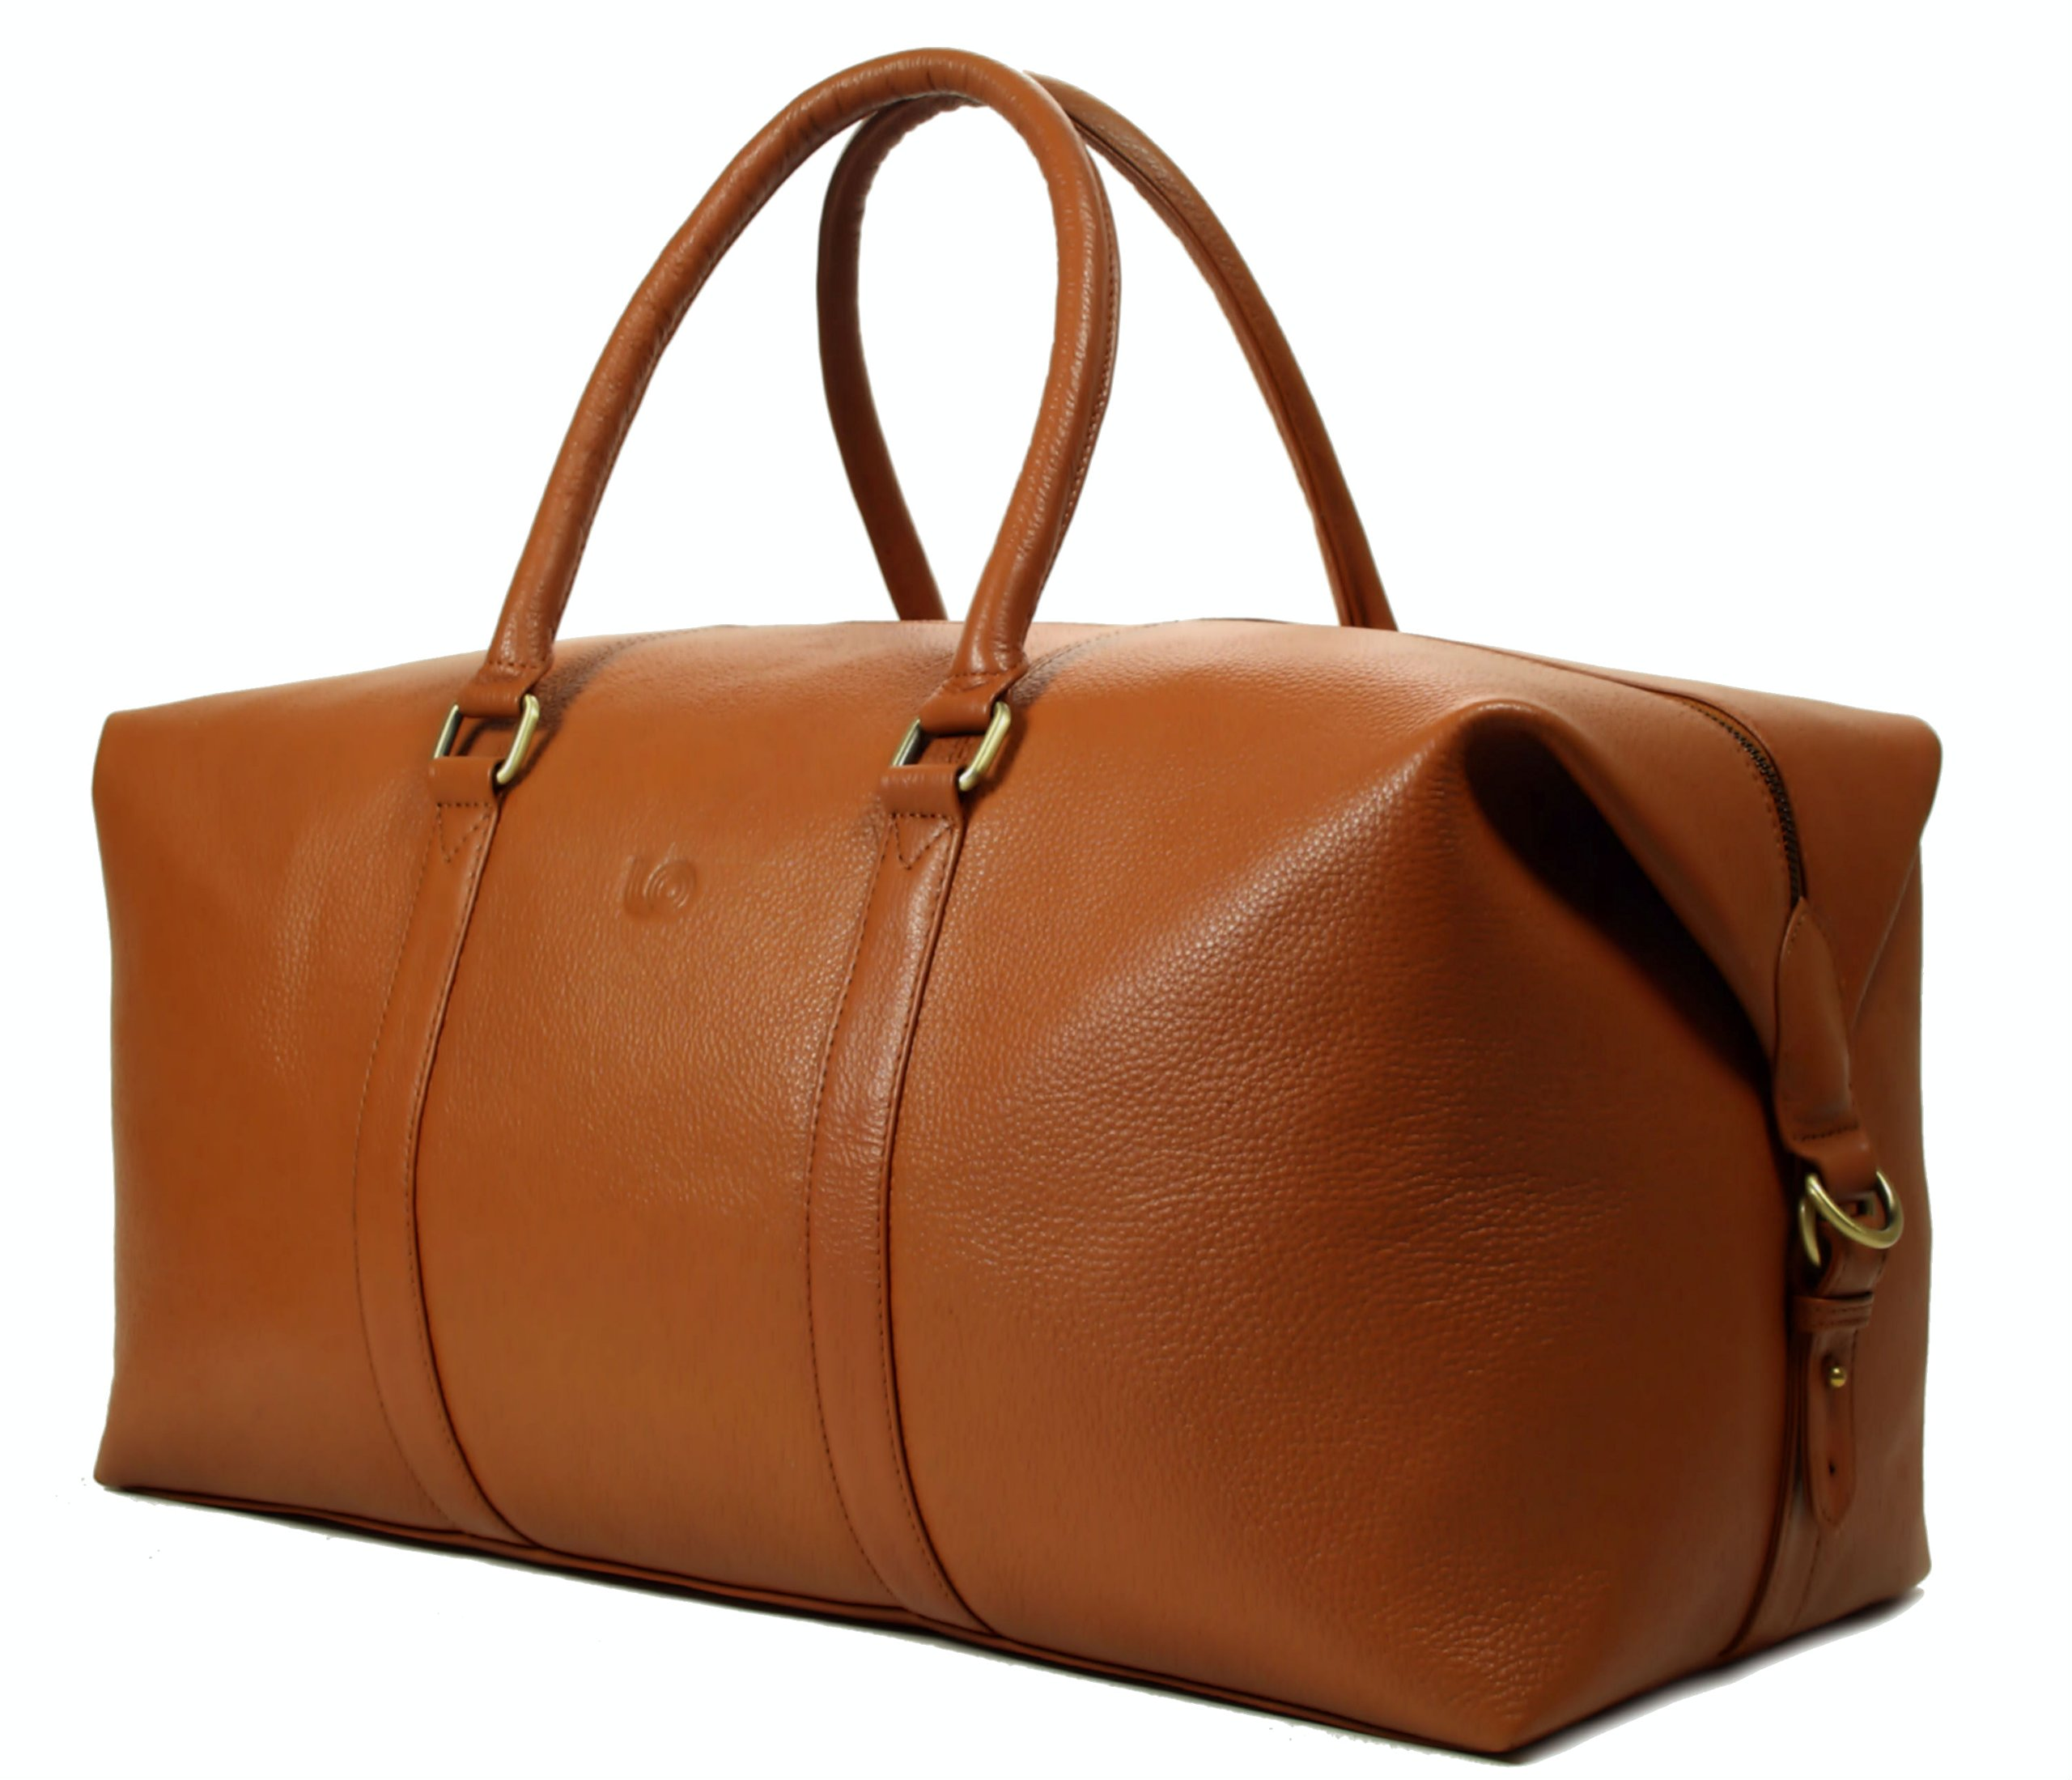 LeftOver Studio Expandable Weekend Overnight Travel Duffel Bag in Tan Top Grain Cow Leather by Leftover Studio (Image #1)